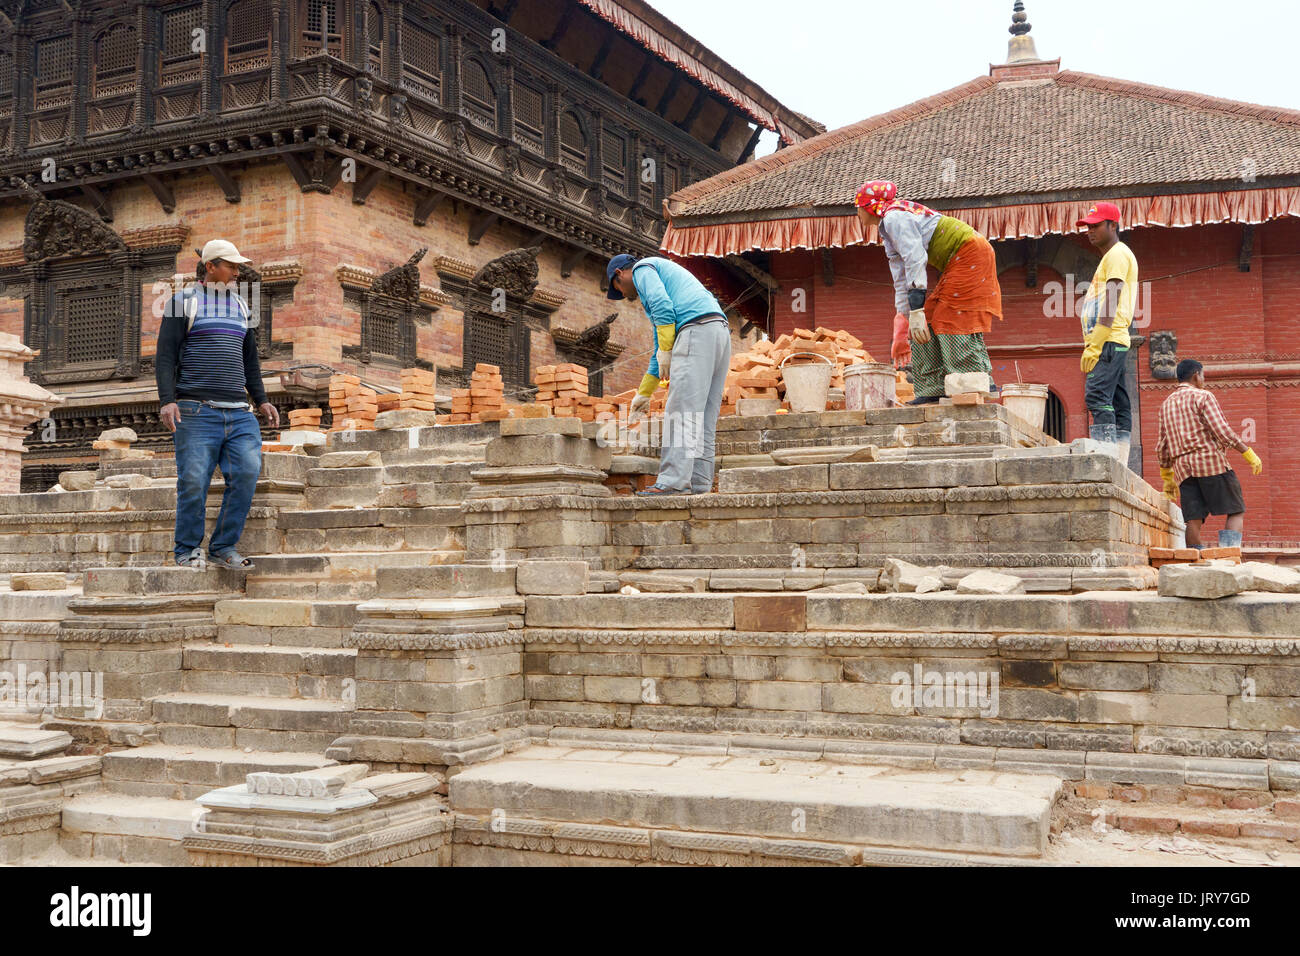 Nepal Workers Stock Photos & Nepal Workers Stock Images - Alamy